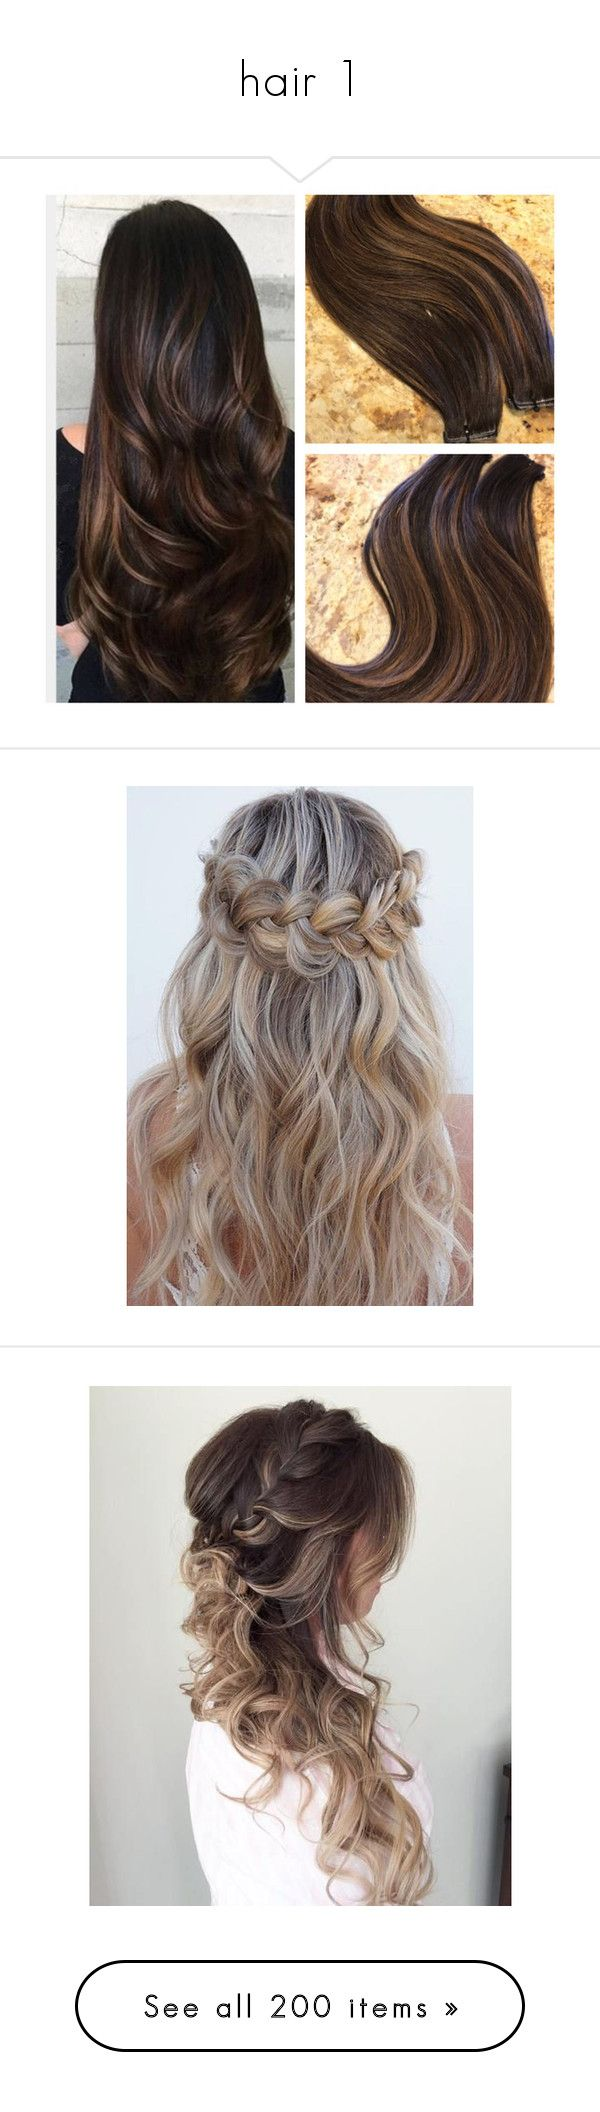 """""""hair 1"""" by evaaaaa-333 ❤ liked on Polyvore featuring beauty products, haircare, hair styling tools, hair, accessories, dark olive, hair accessories, makeup, fine hair care and curling iron"""